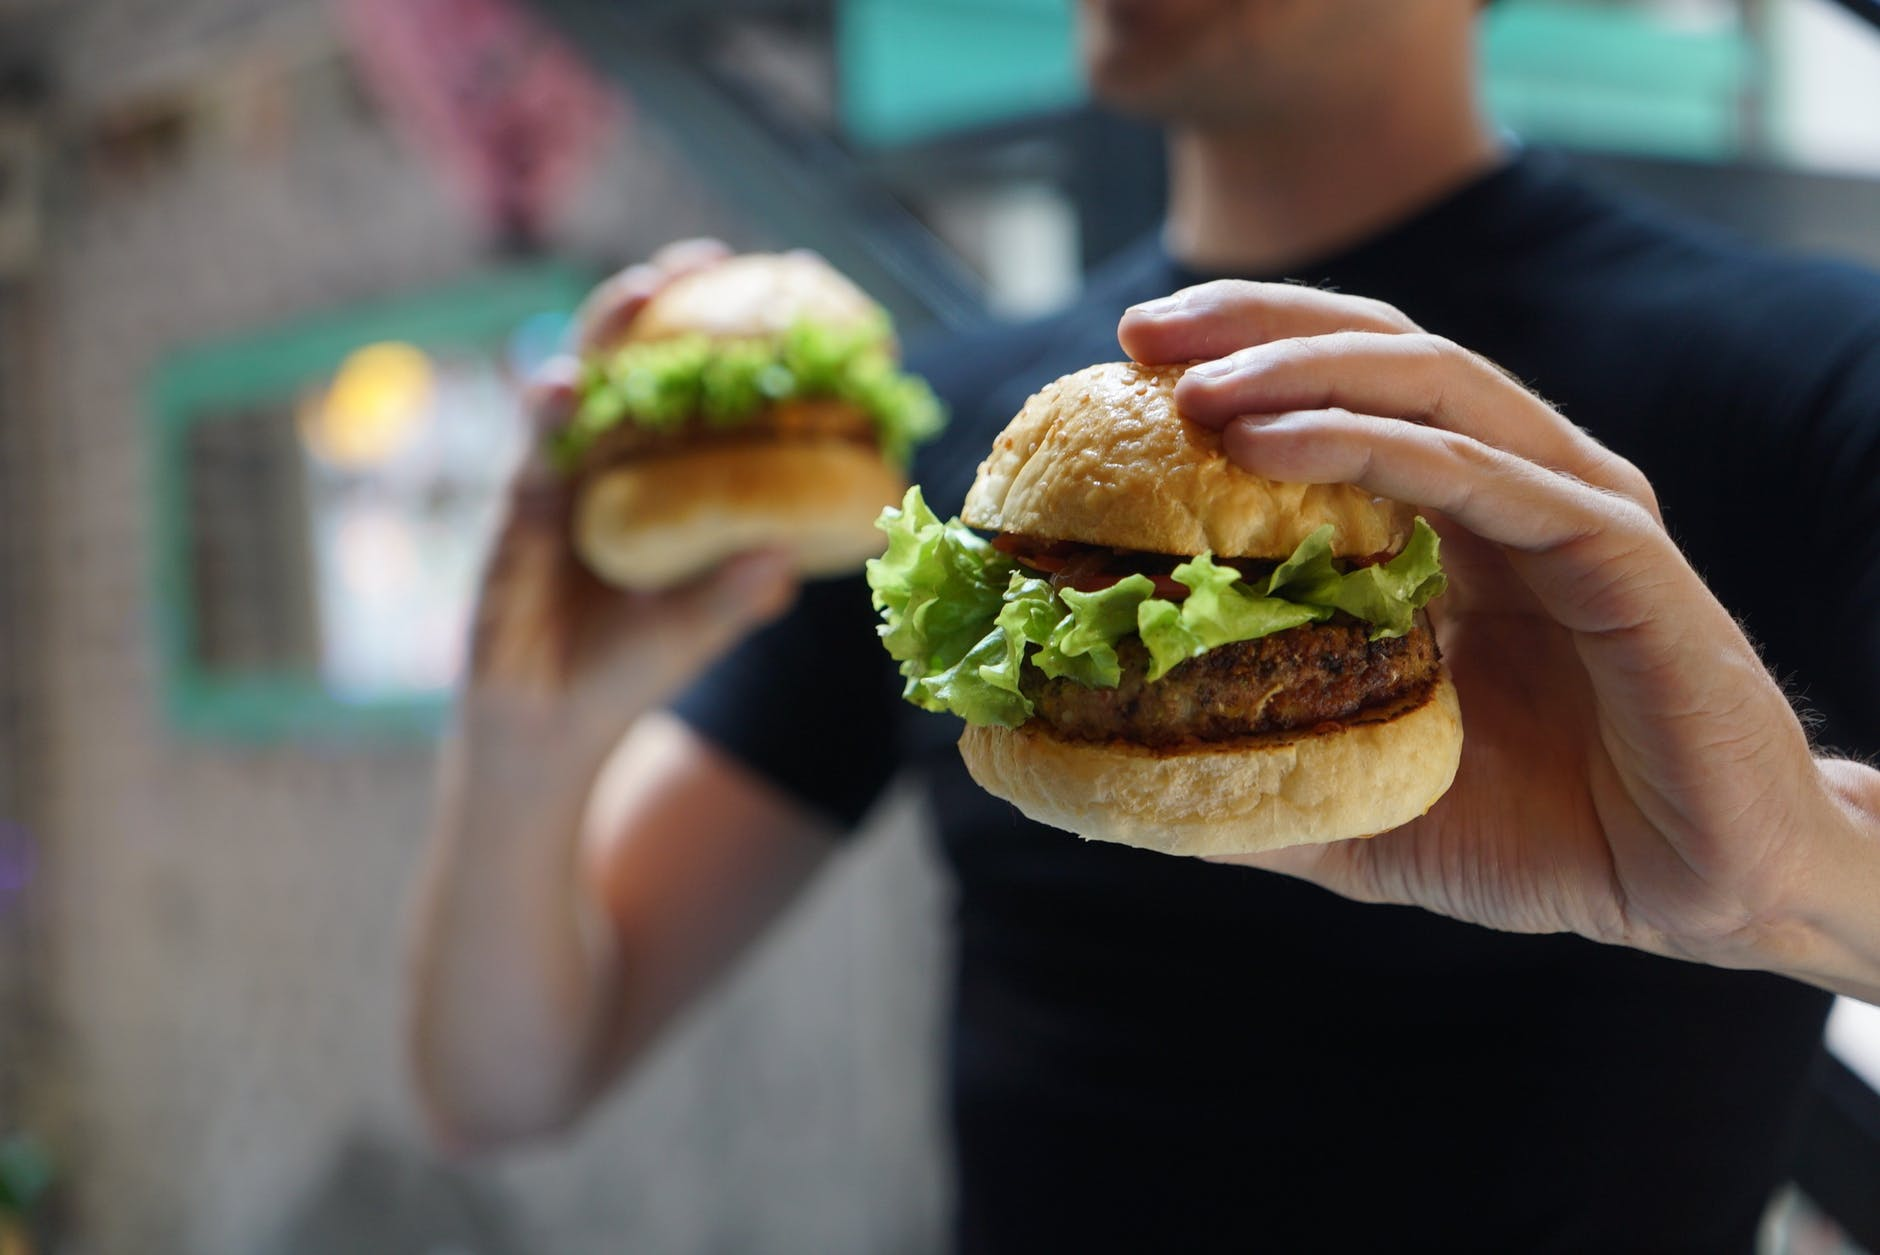 A person holding two burgers